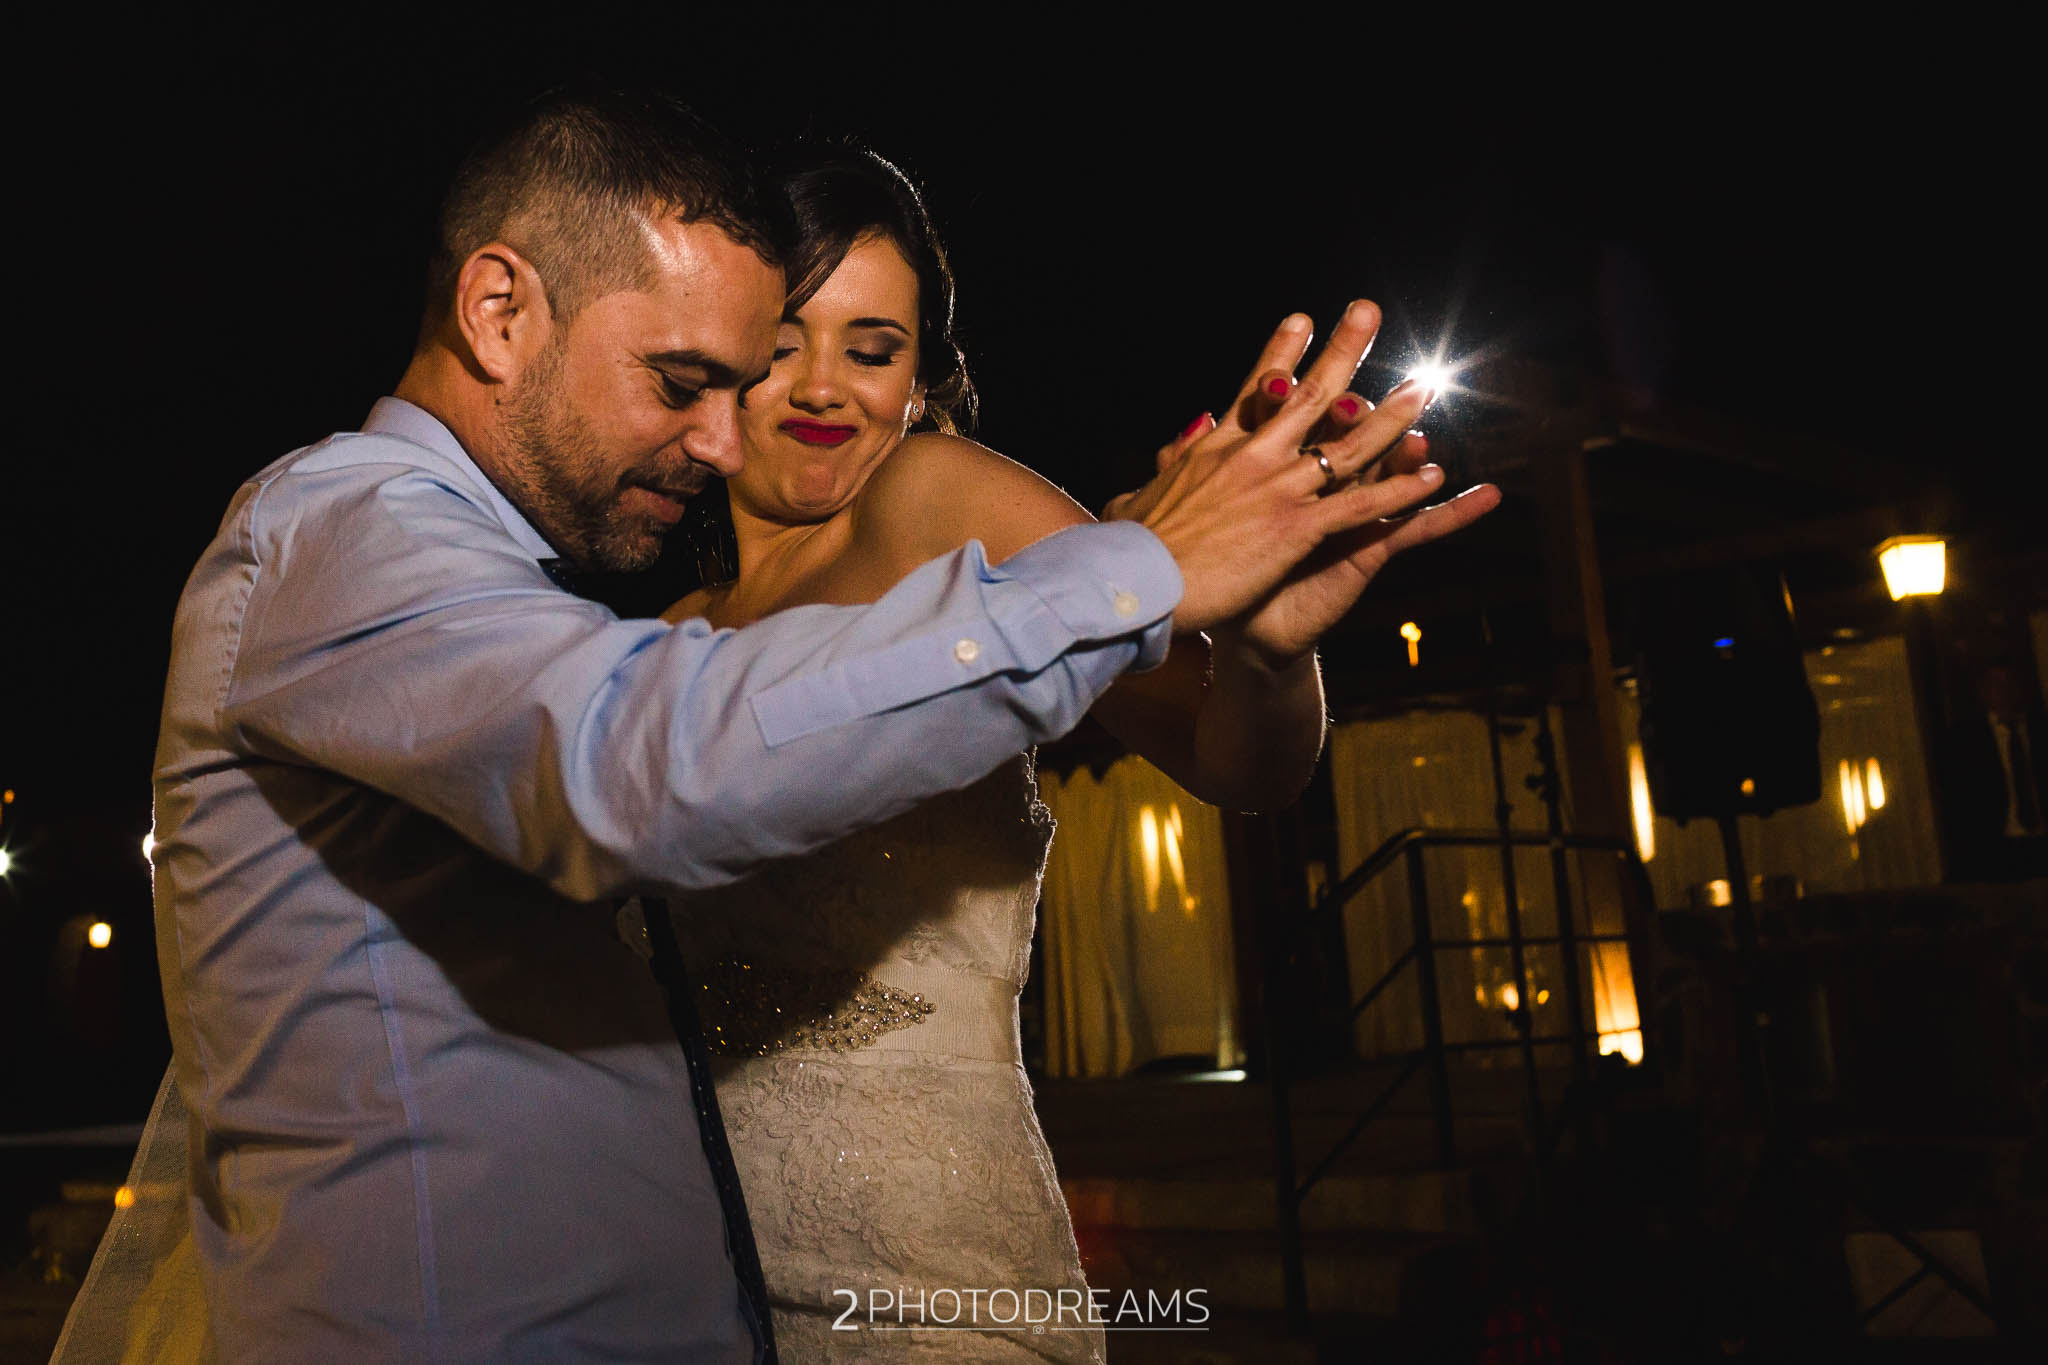 Wedding photographer Lincs